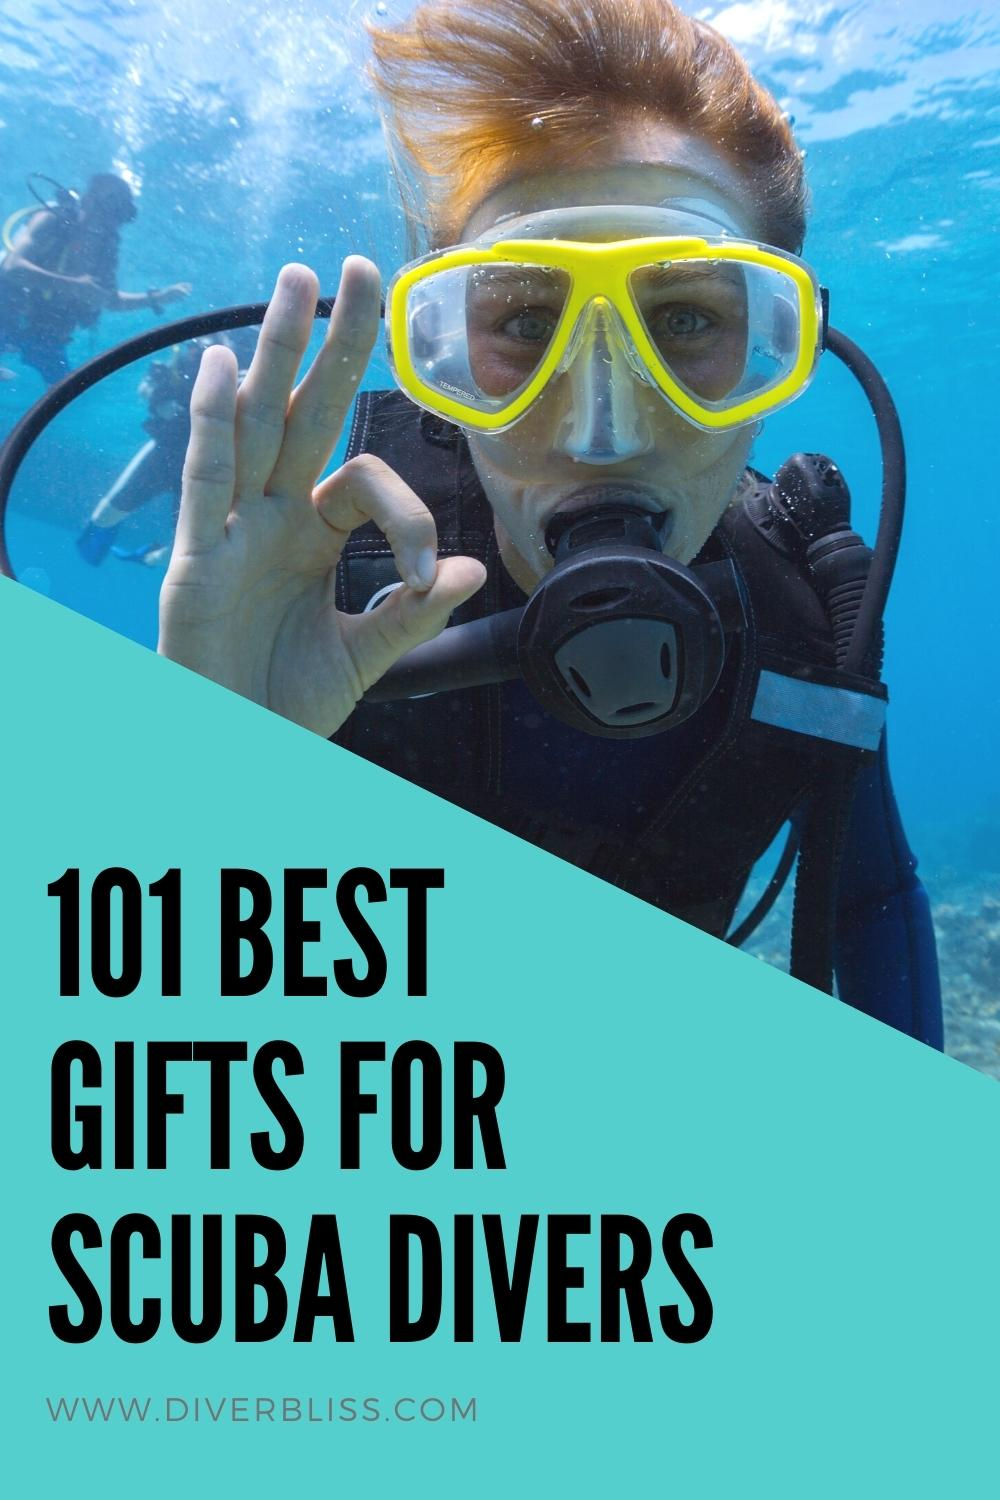 101 Best Gifts for Scuba Divers